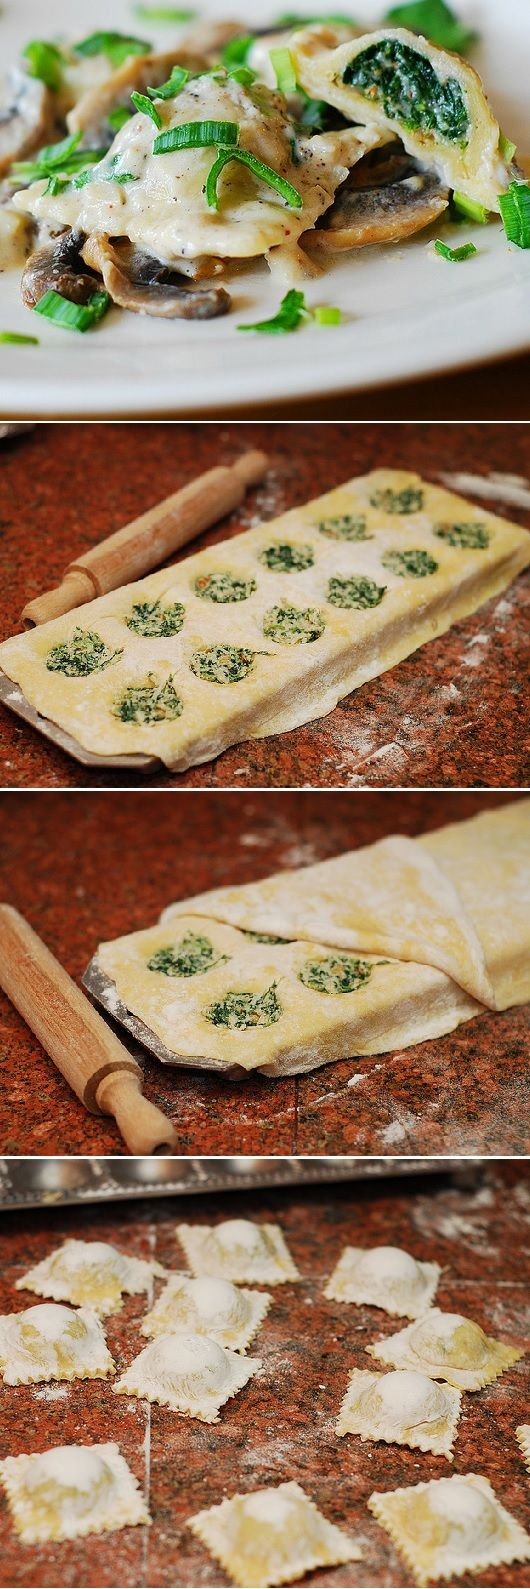 (Italy) Ravioli with goat cheese and spinach filling in Parmesan cream sauce with mushrooms. Homemade from scratch, using a handy ravioli mold: detailed photo tutorial.